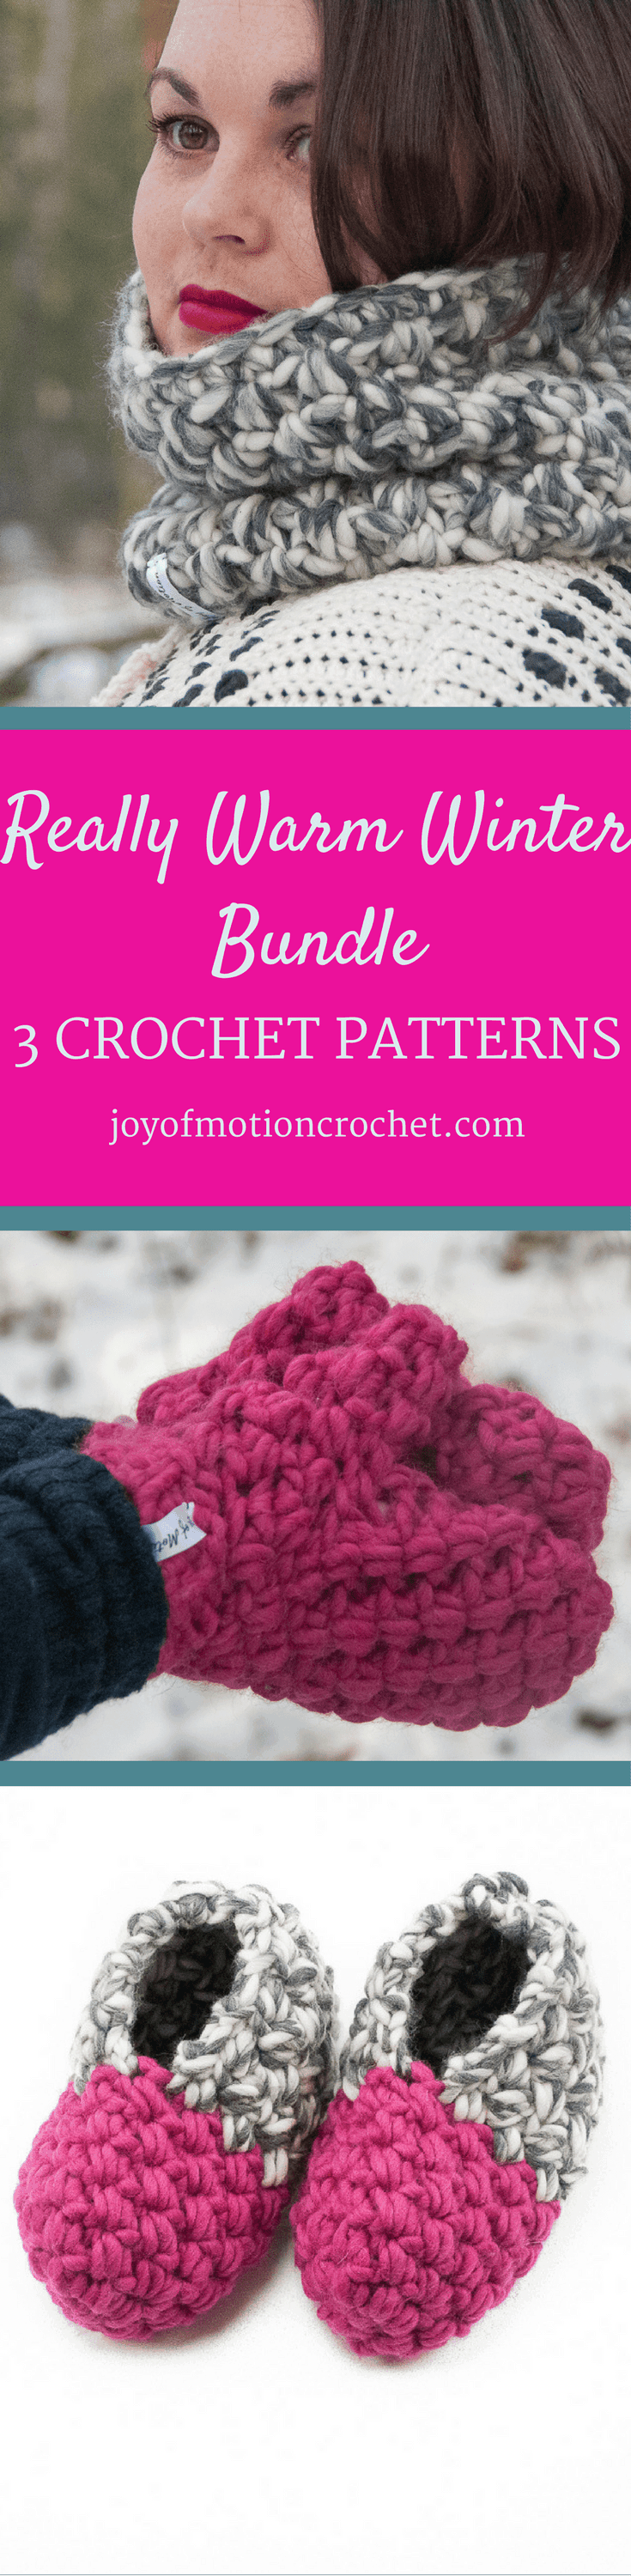 Really Warm Winter Bundle. Bundle Crochet Patterns. 3 crochet patterns E-book. Bulky Mittens Crochet pattern. mittens crochet pattern design. Intermediate crochet pattern. Mittens crochet pattern. Crochet pattern for mittens.Intermediate mittens crochet pattern. The Cozy Slippers - unisex slippers crochet pattern. Slippers crochet pattern for men & women. The Infinity Cowl. Crochet pattern for a warm winter cowl. This cowl crochet pattern is one-size, but can be customized. Cowl crochet patterns. Crochet pattern cowls. Click to learn more or pin it for later.